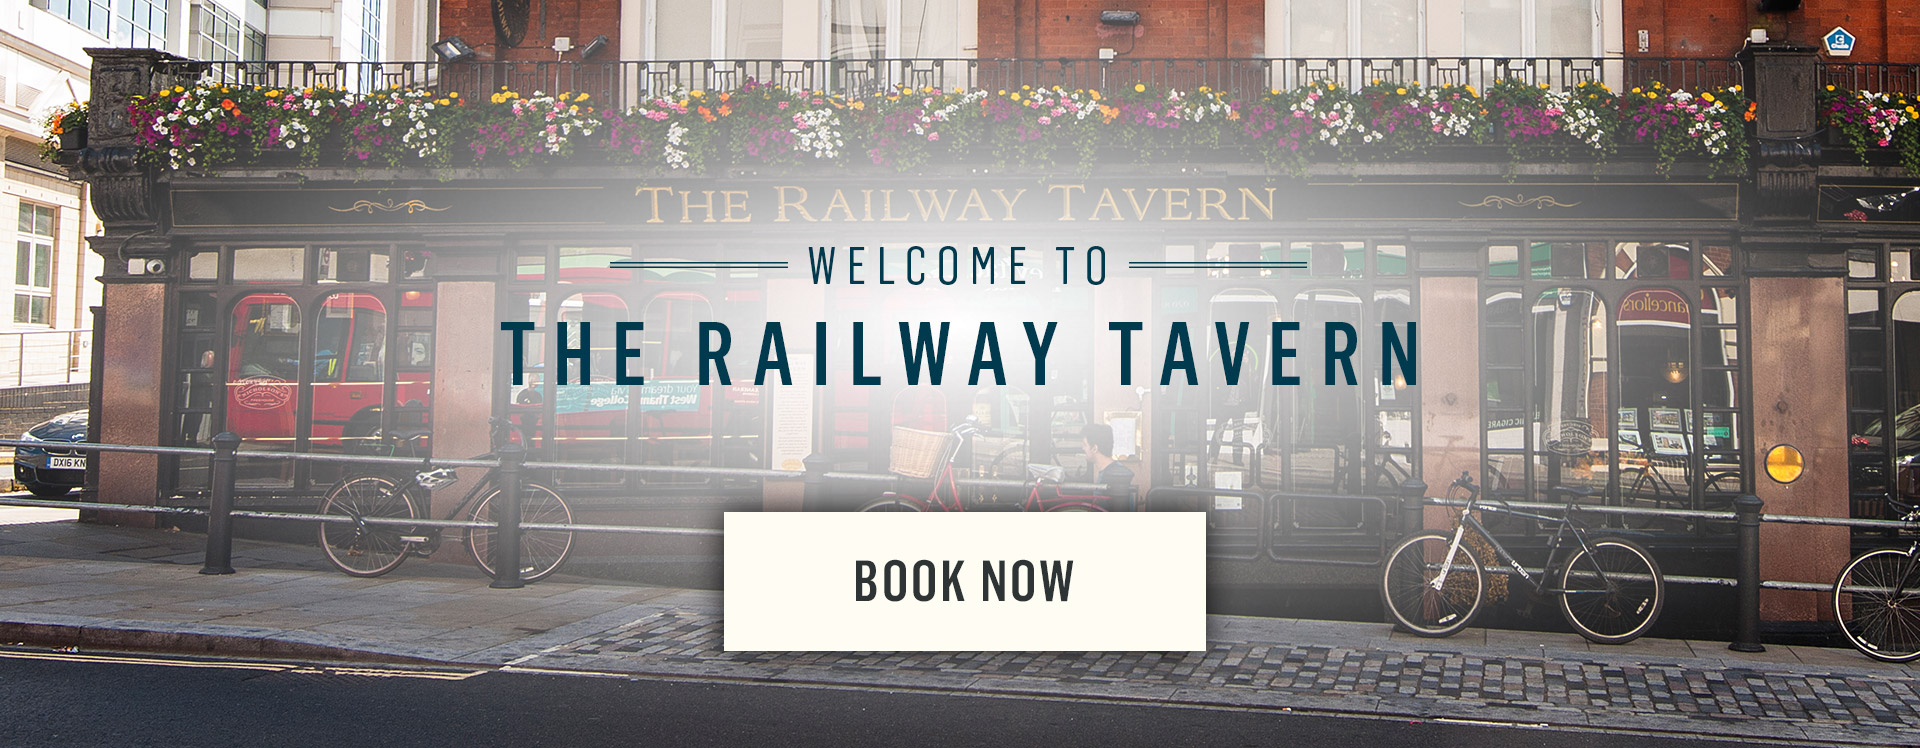 Welcome to The Railway Tavern - Book Now